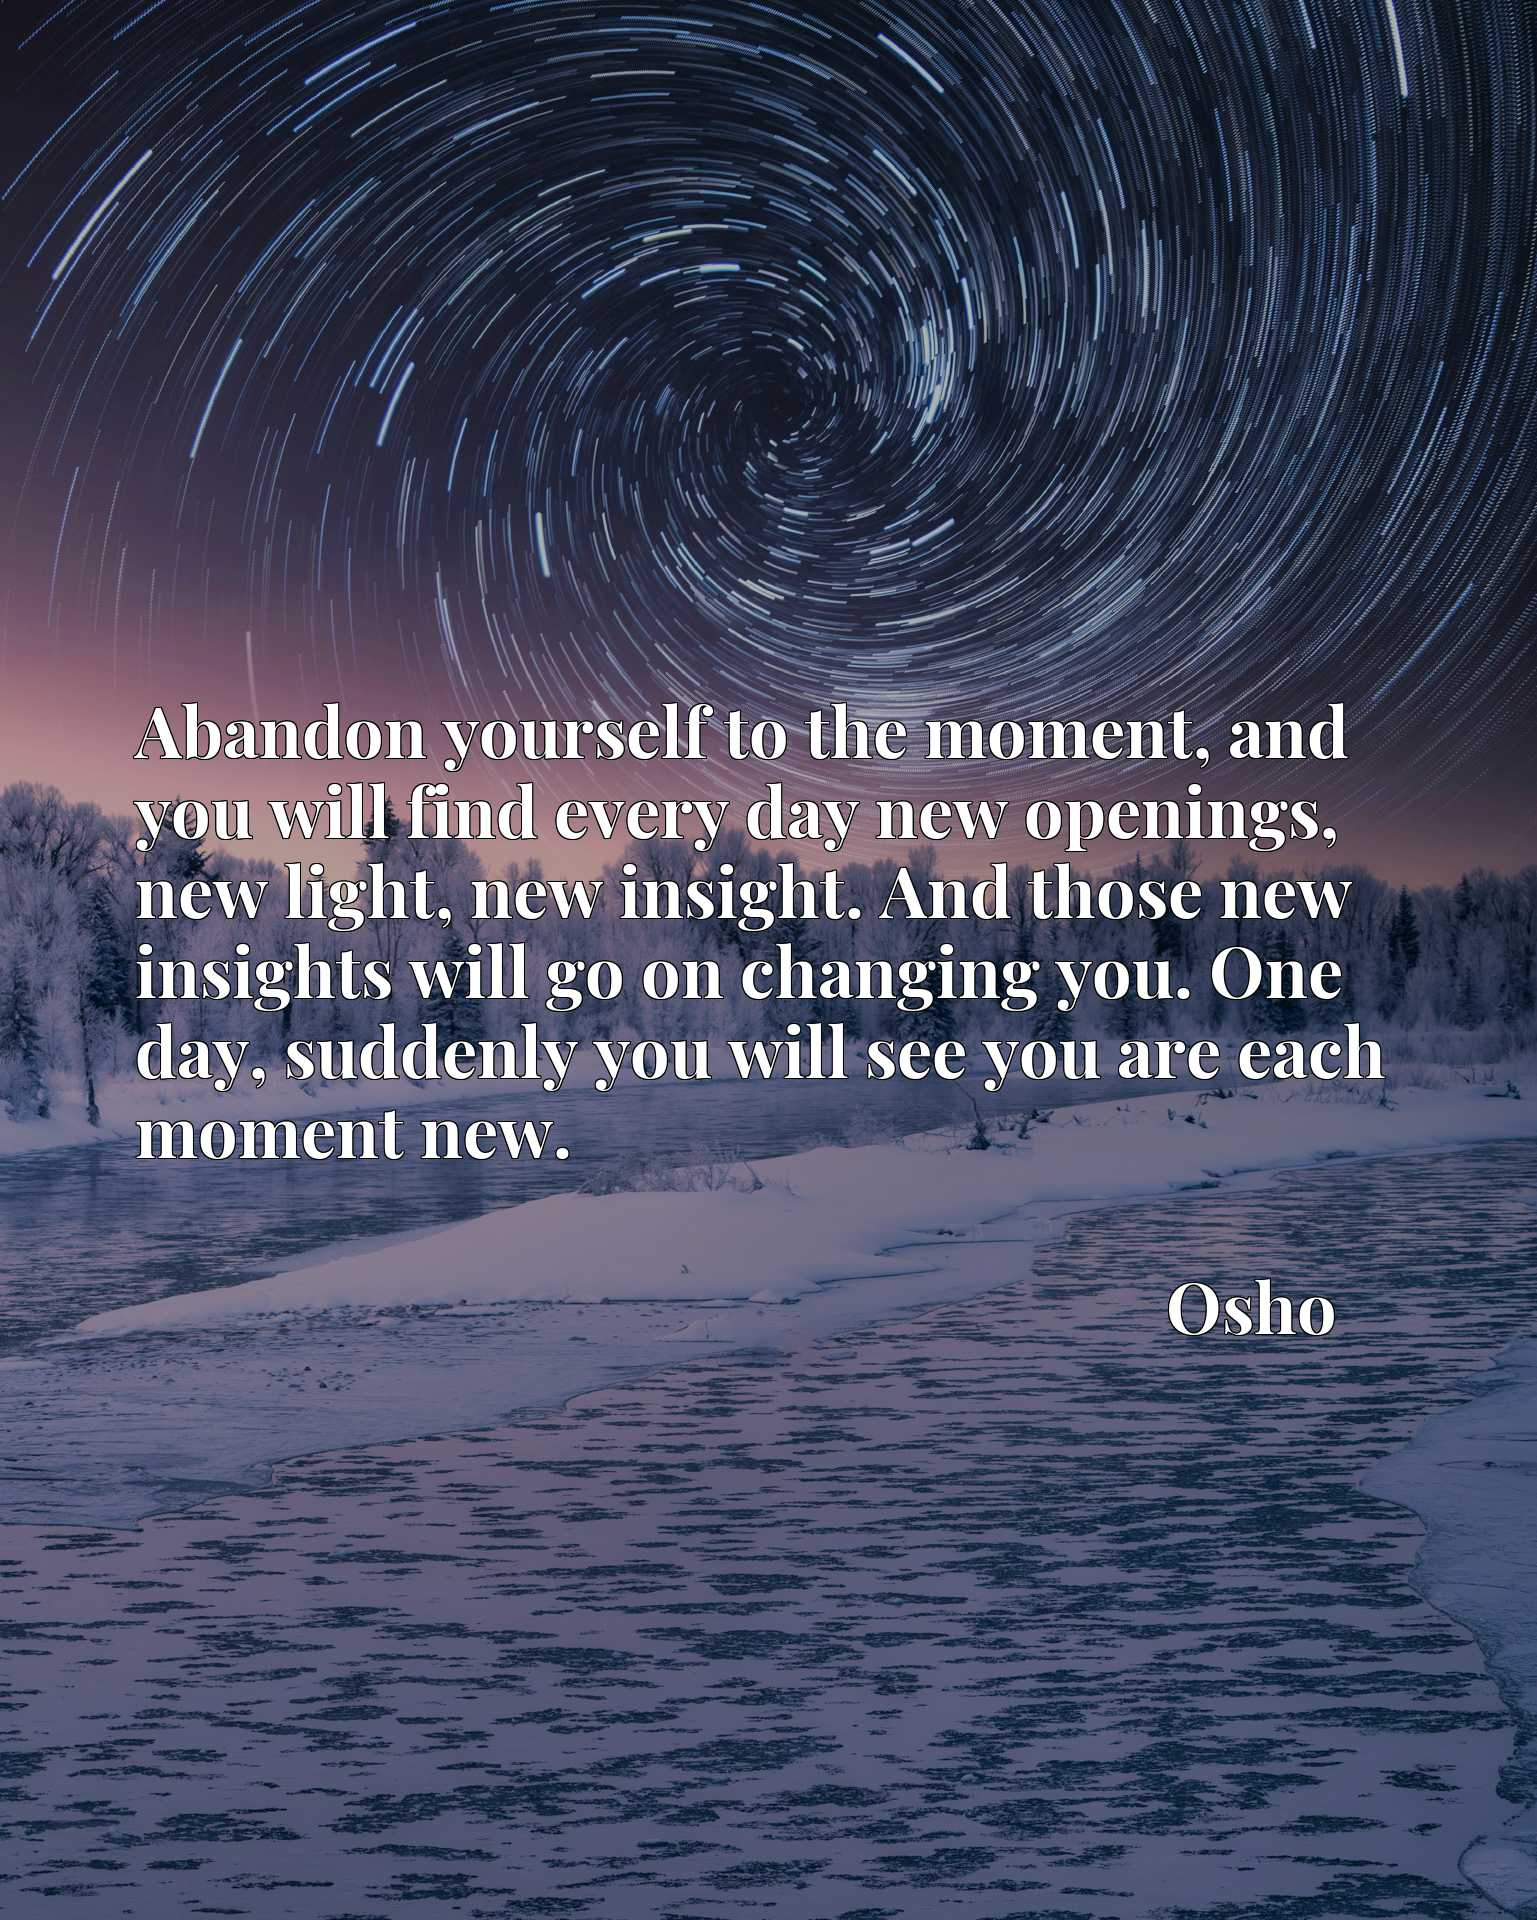 Abandon yourself to the moment, and you will find every day new openings, new light, new insight. And those new insights will go on changing you. One day, suddenly you will see you are each moment new.